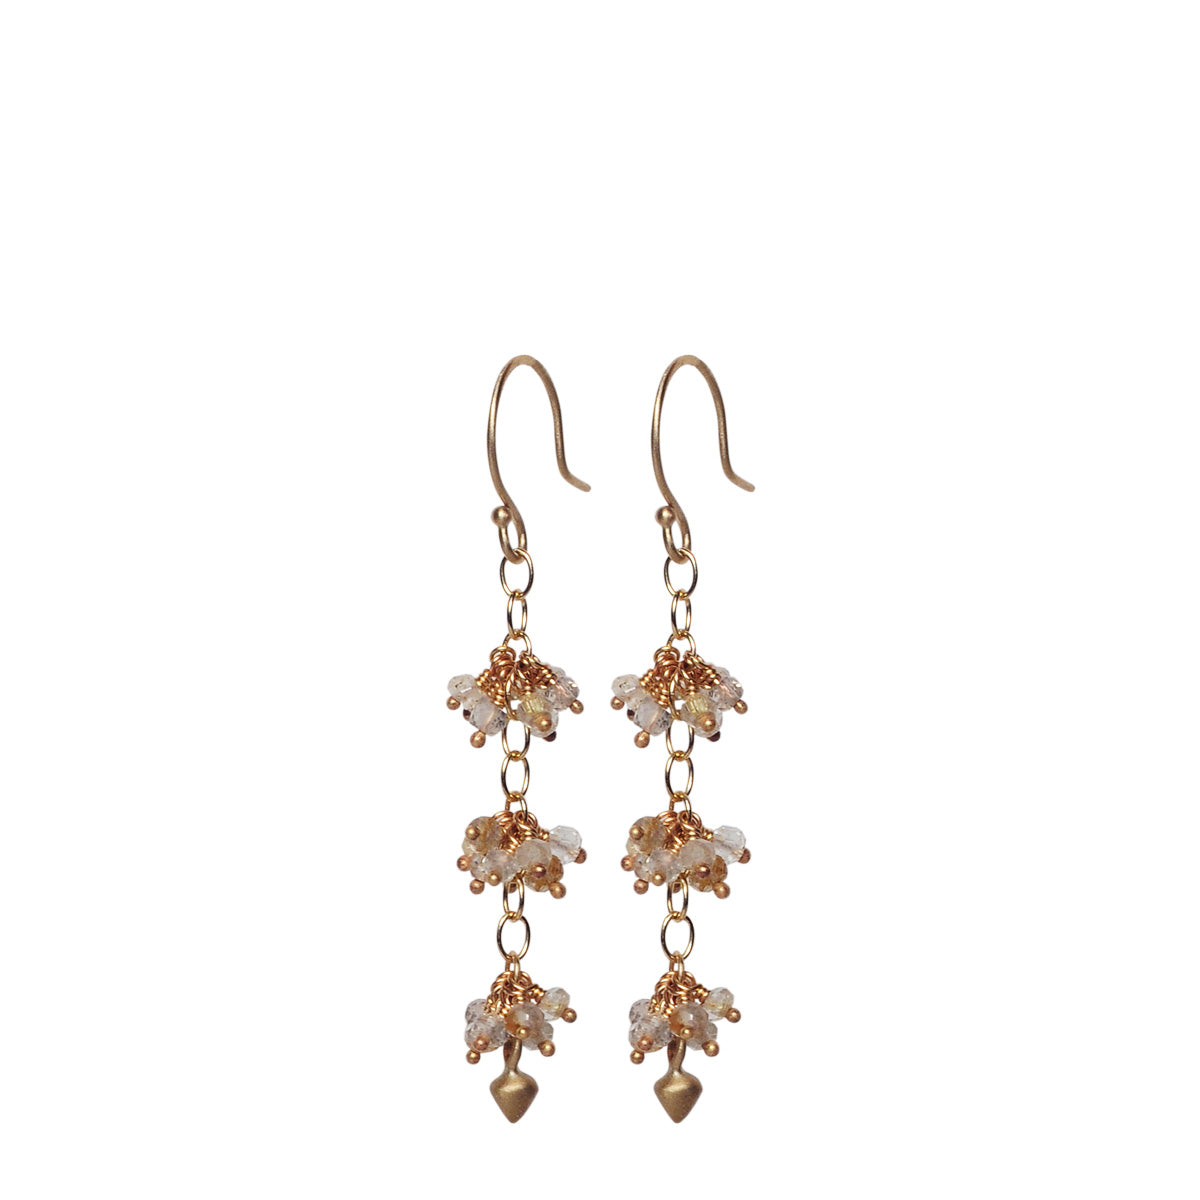 10K Gold 3 Bead Cluster Rutilated Quartz Earring with Lotus Buds